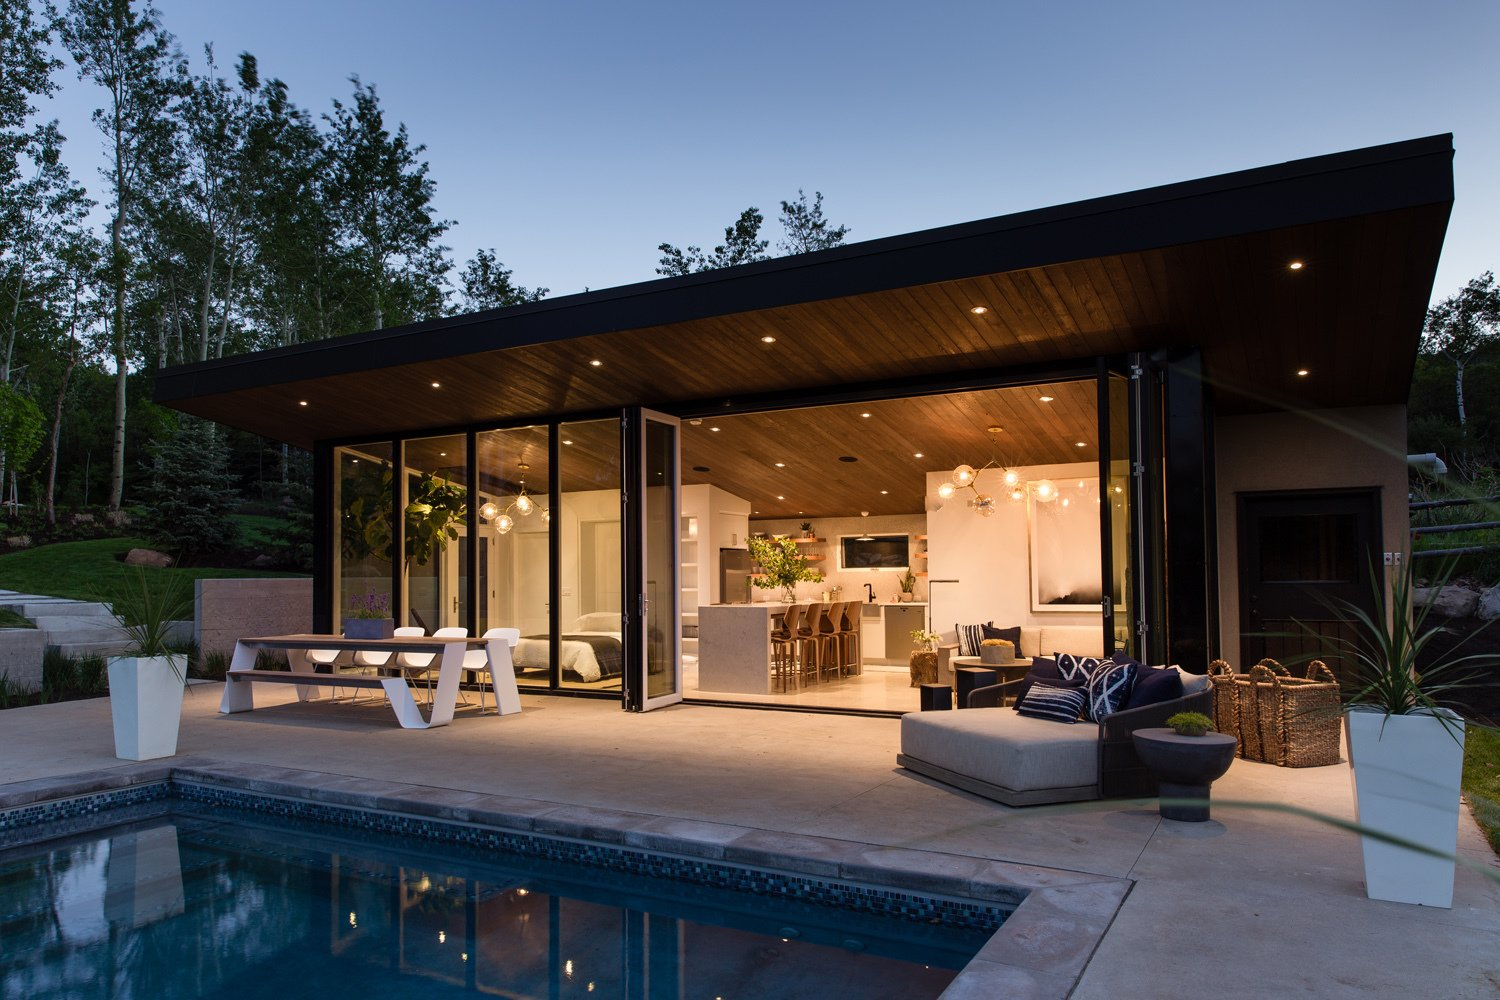 Exterior, Stucco Siding Material, Small Home Building Type, Metal Siding Material, Tiny Home Building Type, Metal Roof Material, Glass Siding Material, and Shed RoofLine  Photo 16 of 16 in This Can-Do Pool House Cleverly Goes From Private to Party Mode from Modern Mountain Pool House